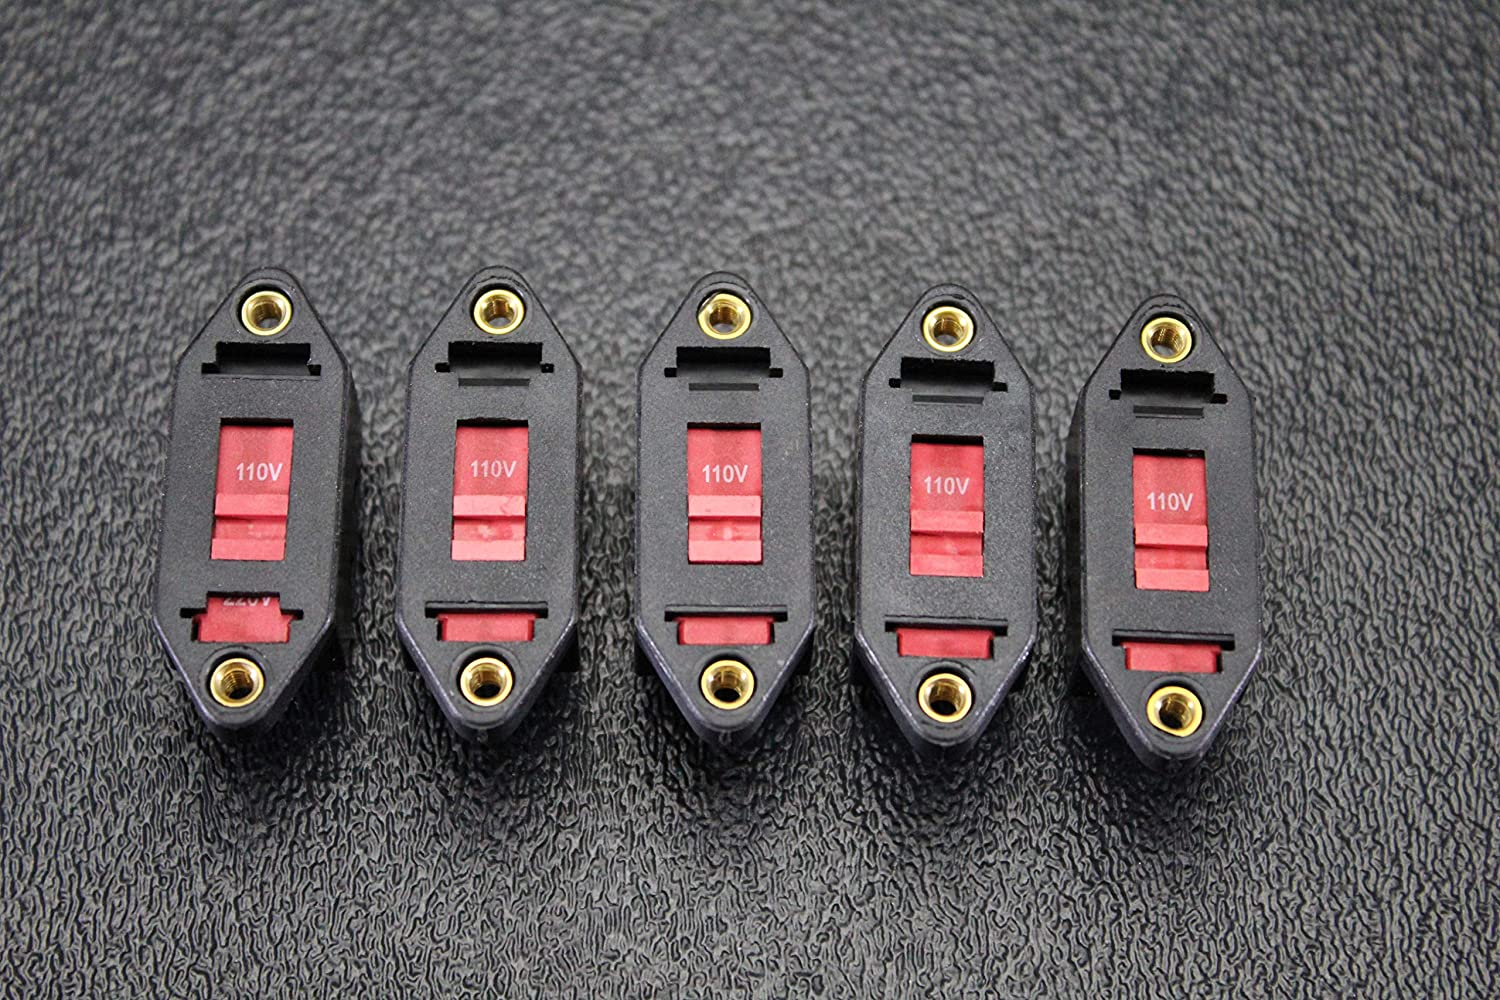 5 PCS Voltage Switch 110V/220V 8 AMP 250V 6 PIN Toggle Rocker ON Off VS-1122